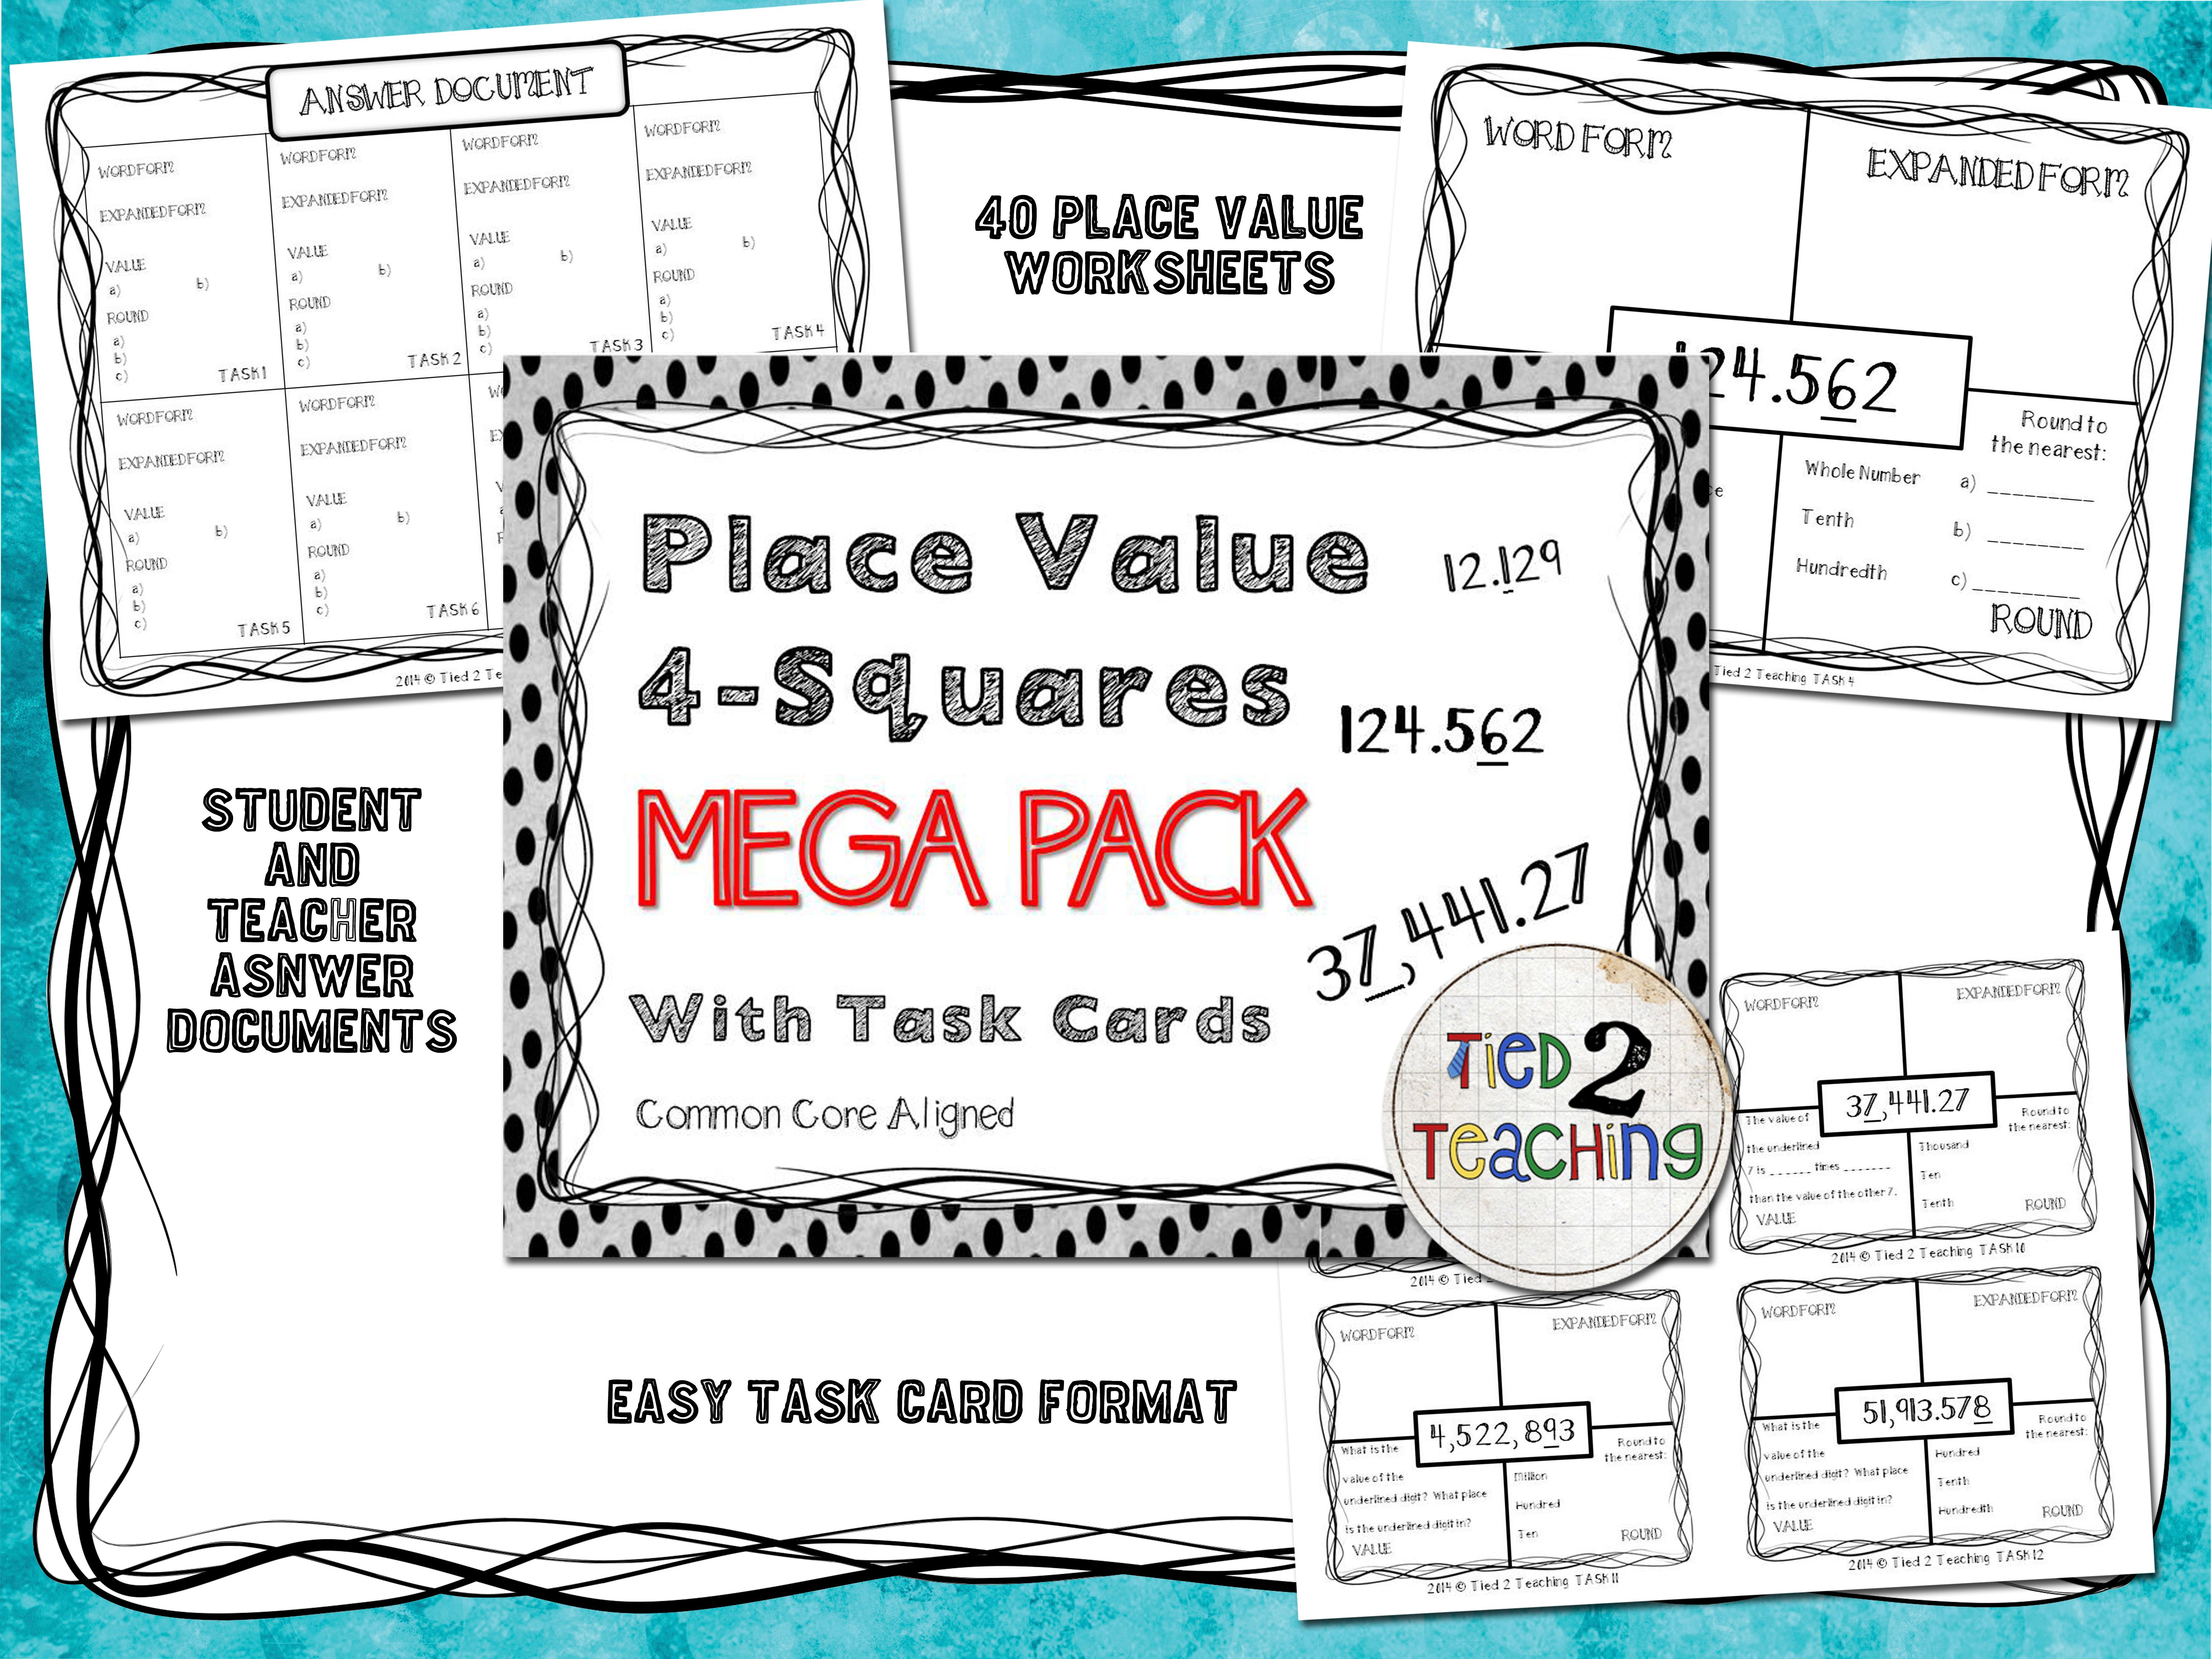 He Place Value 4 Square Mega Pack Is An Excellent Resource